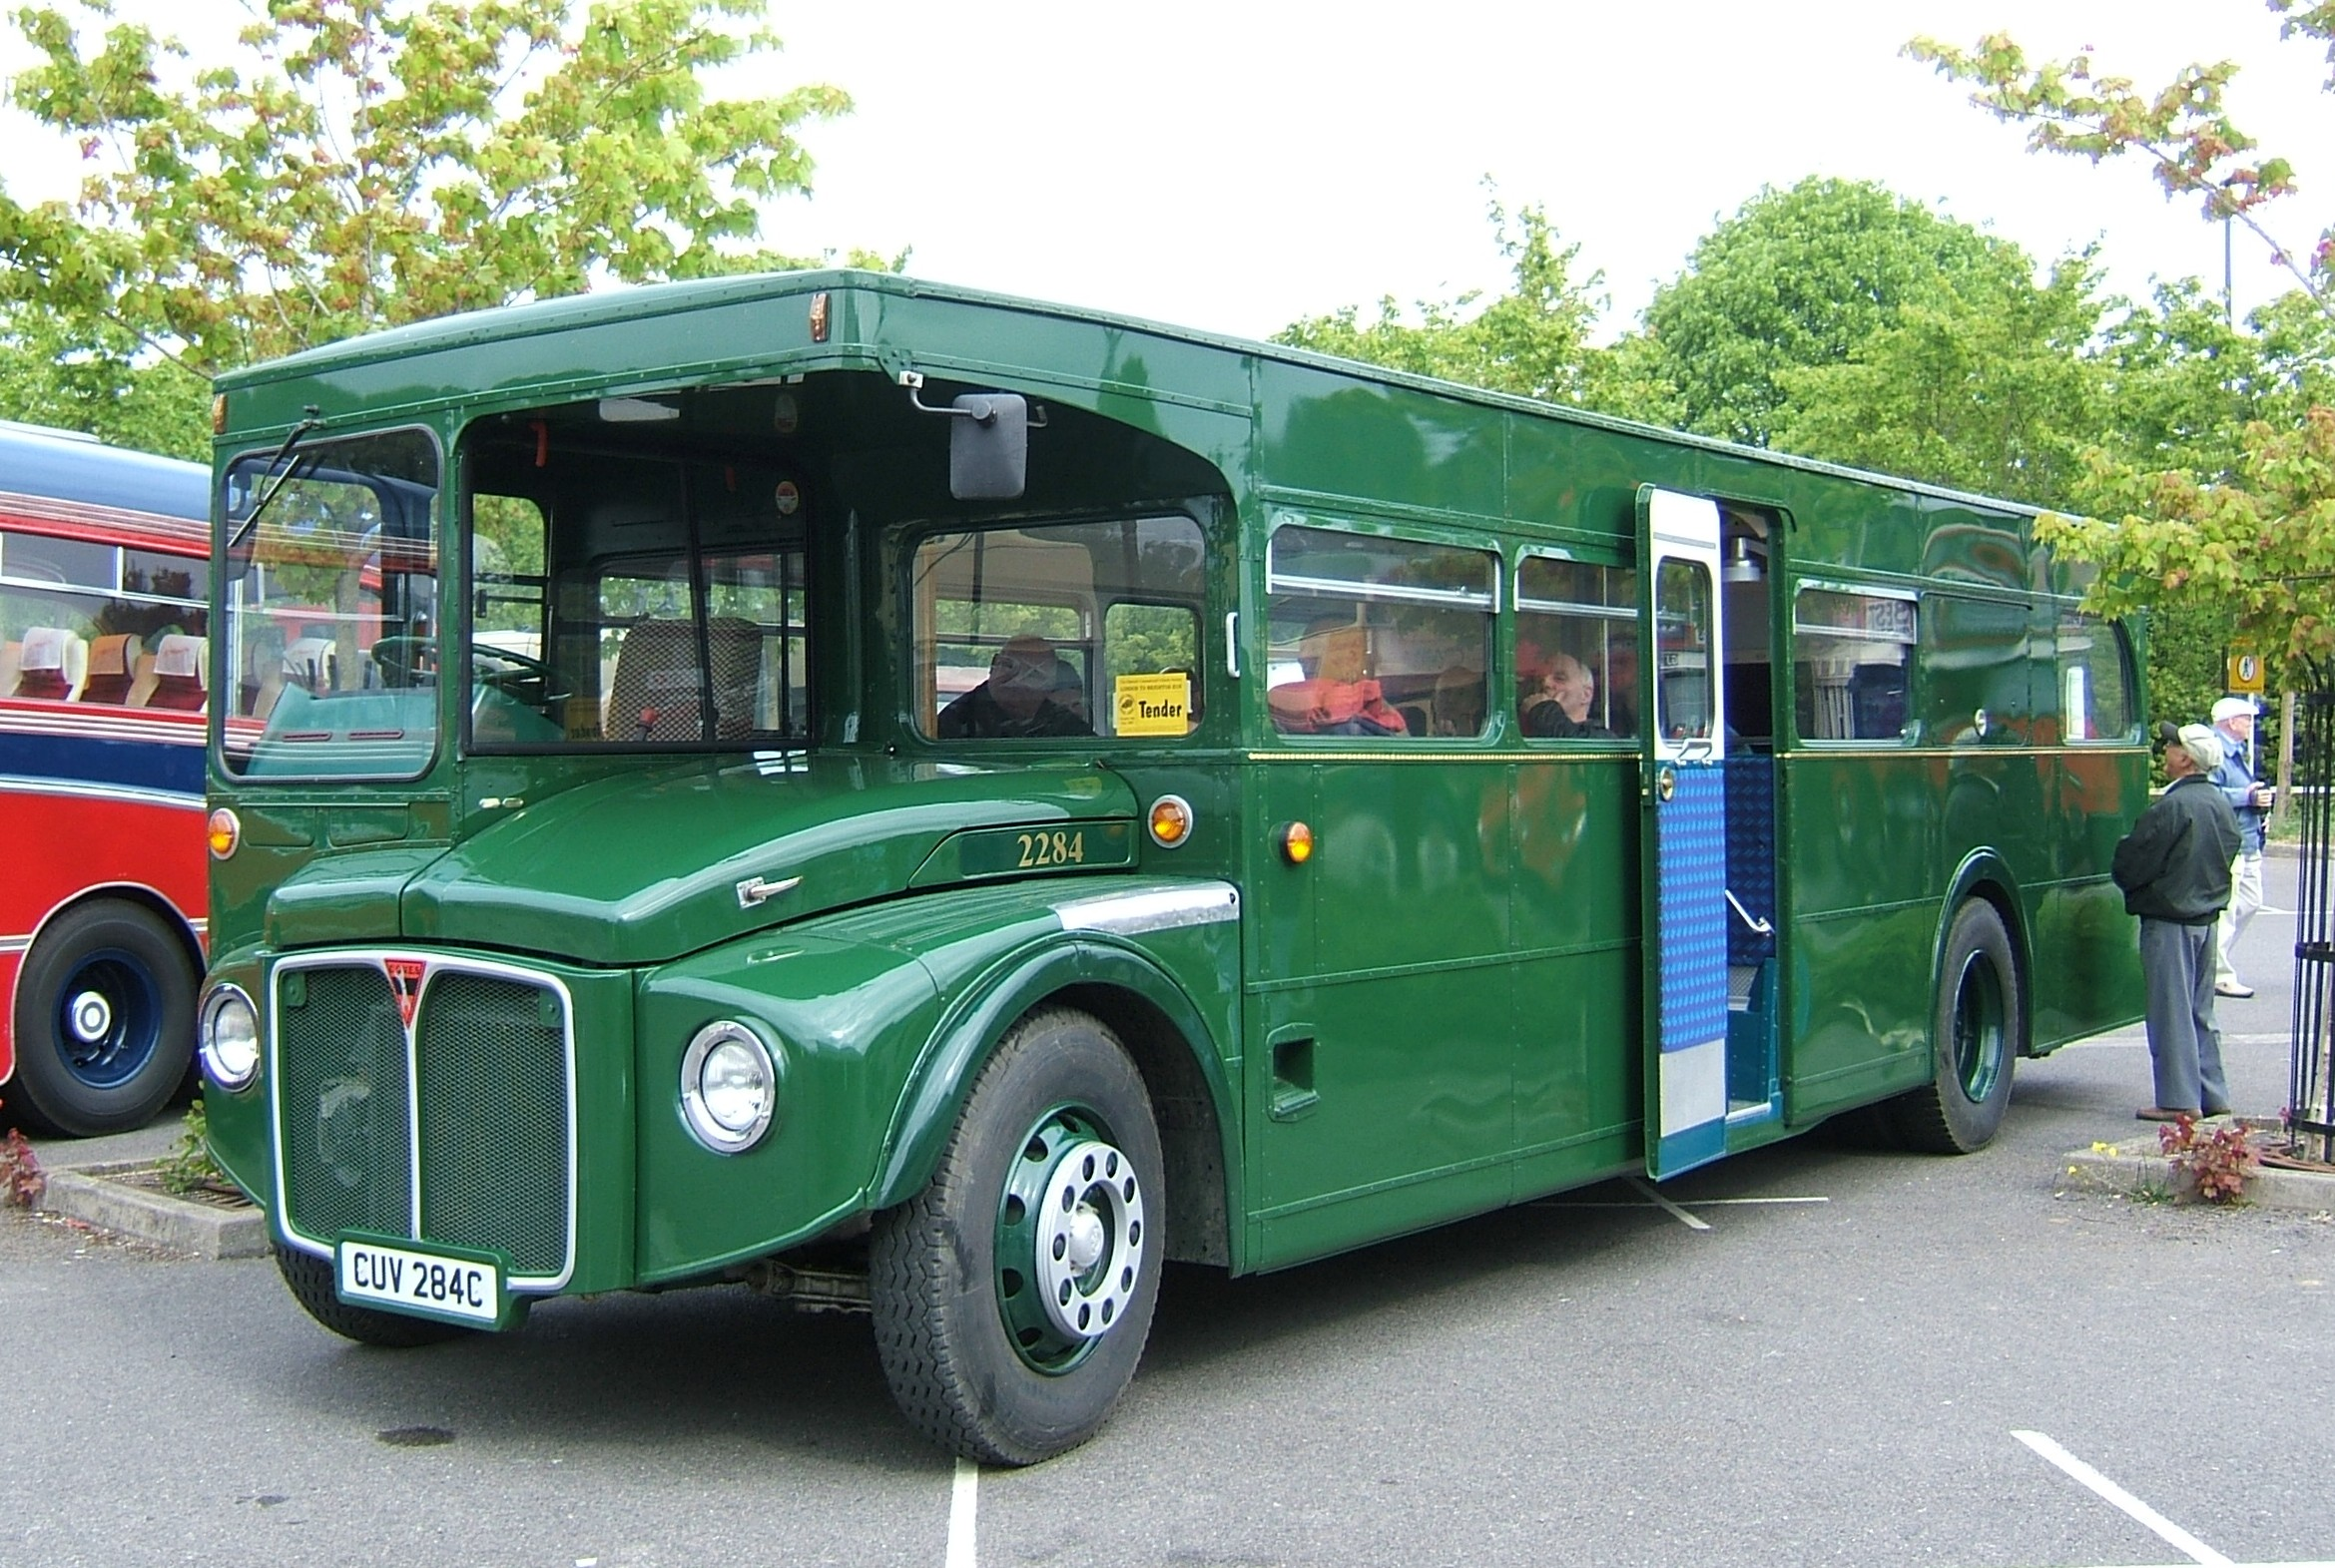 File:COVES mobile workshop 2284 (CUV 284C), ex Routemaster RML2284, 2007